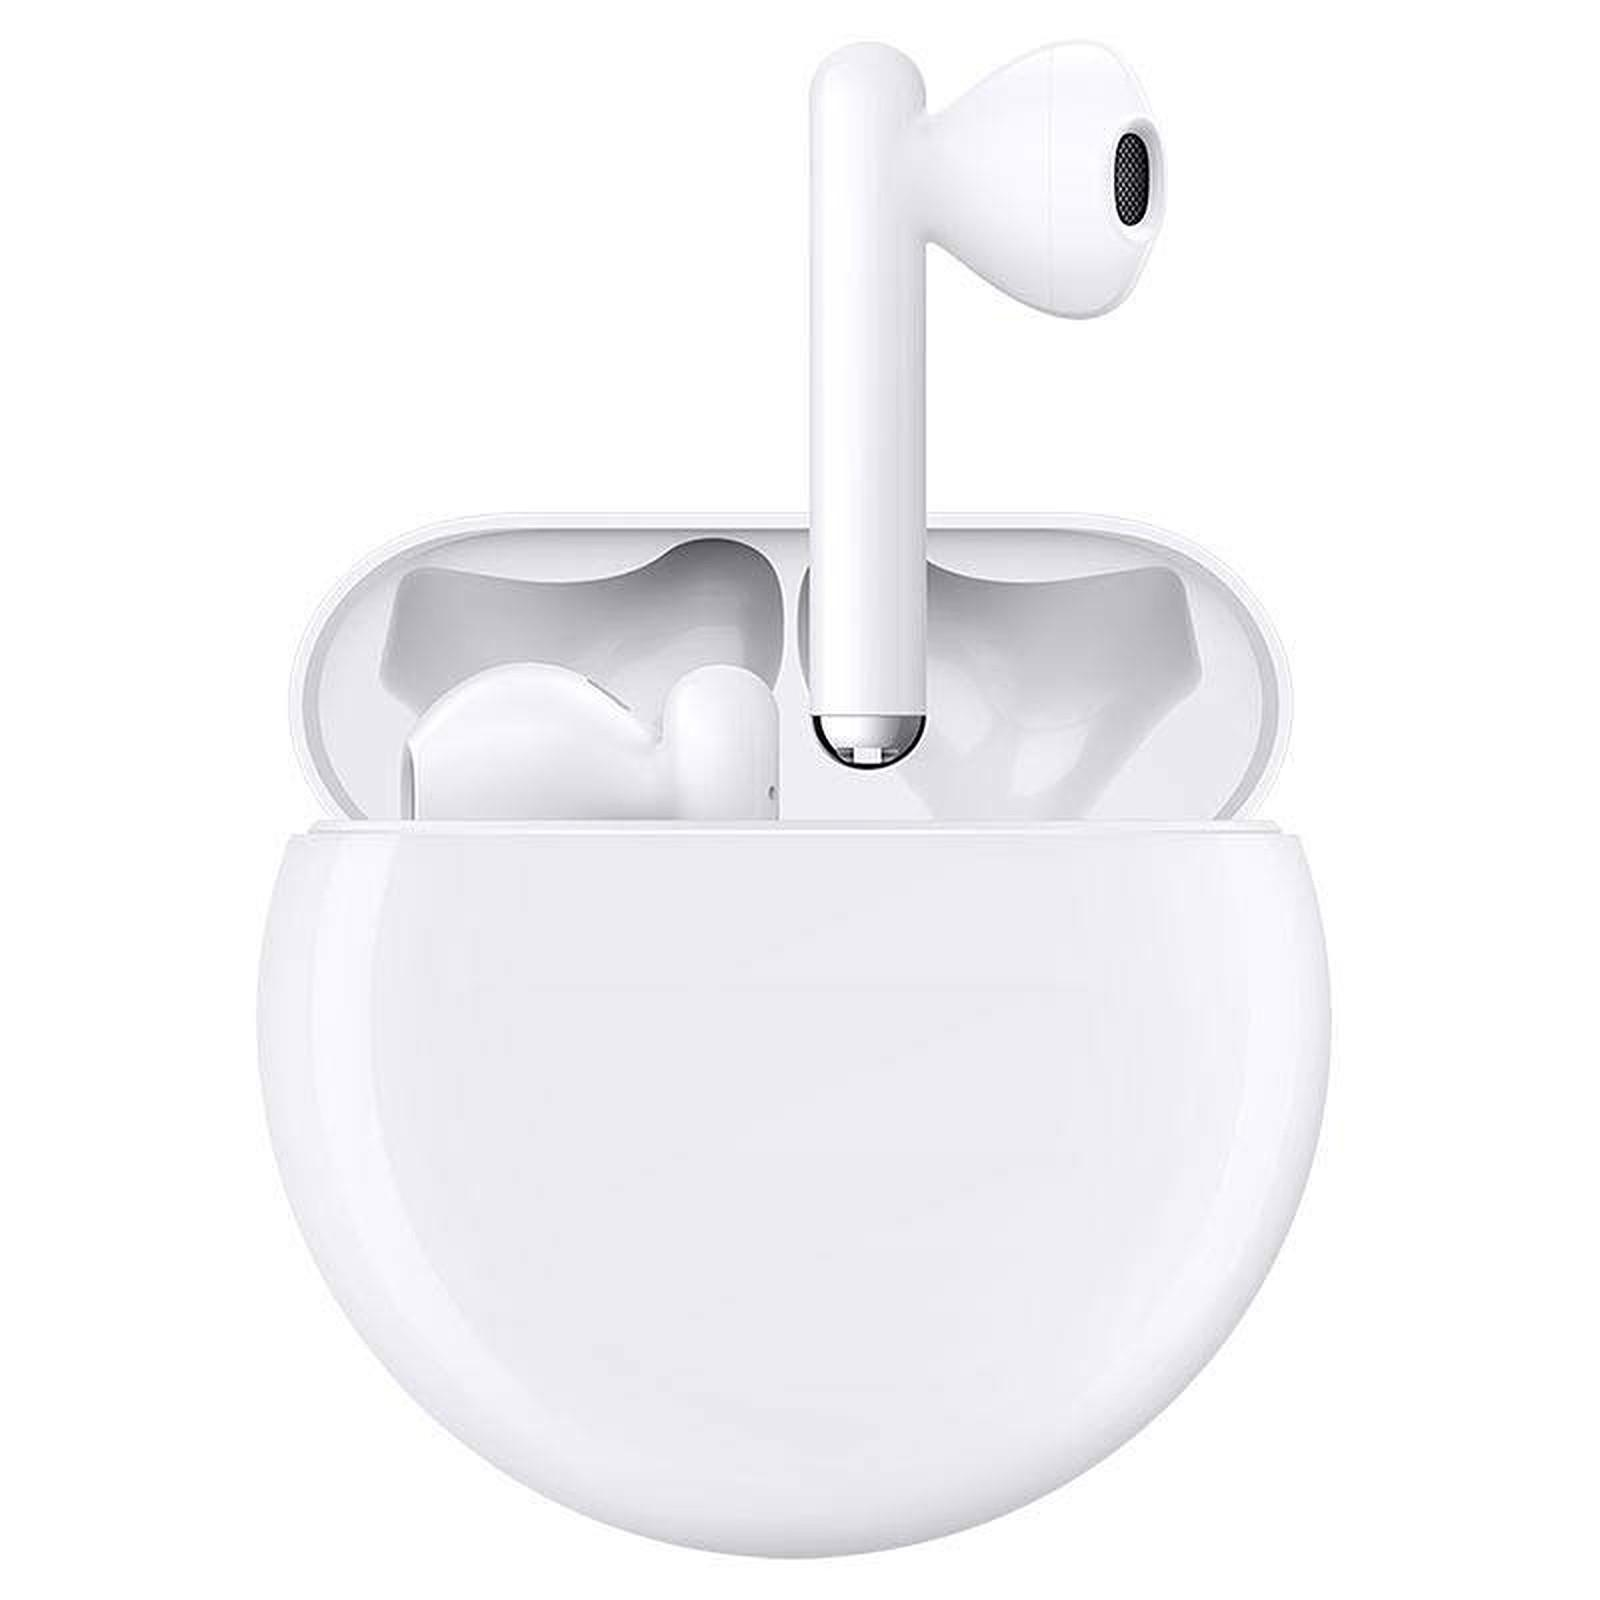 Huawei Freebuds 3 Earbud Noise-Cancelling Bluetooth Earphones - Pearl white